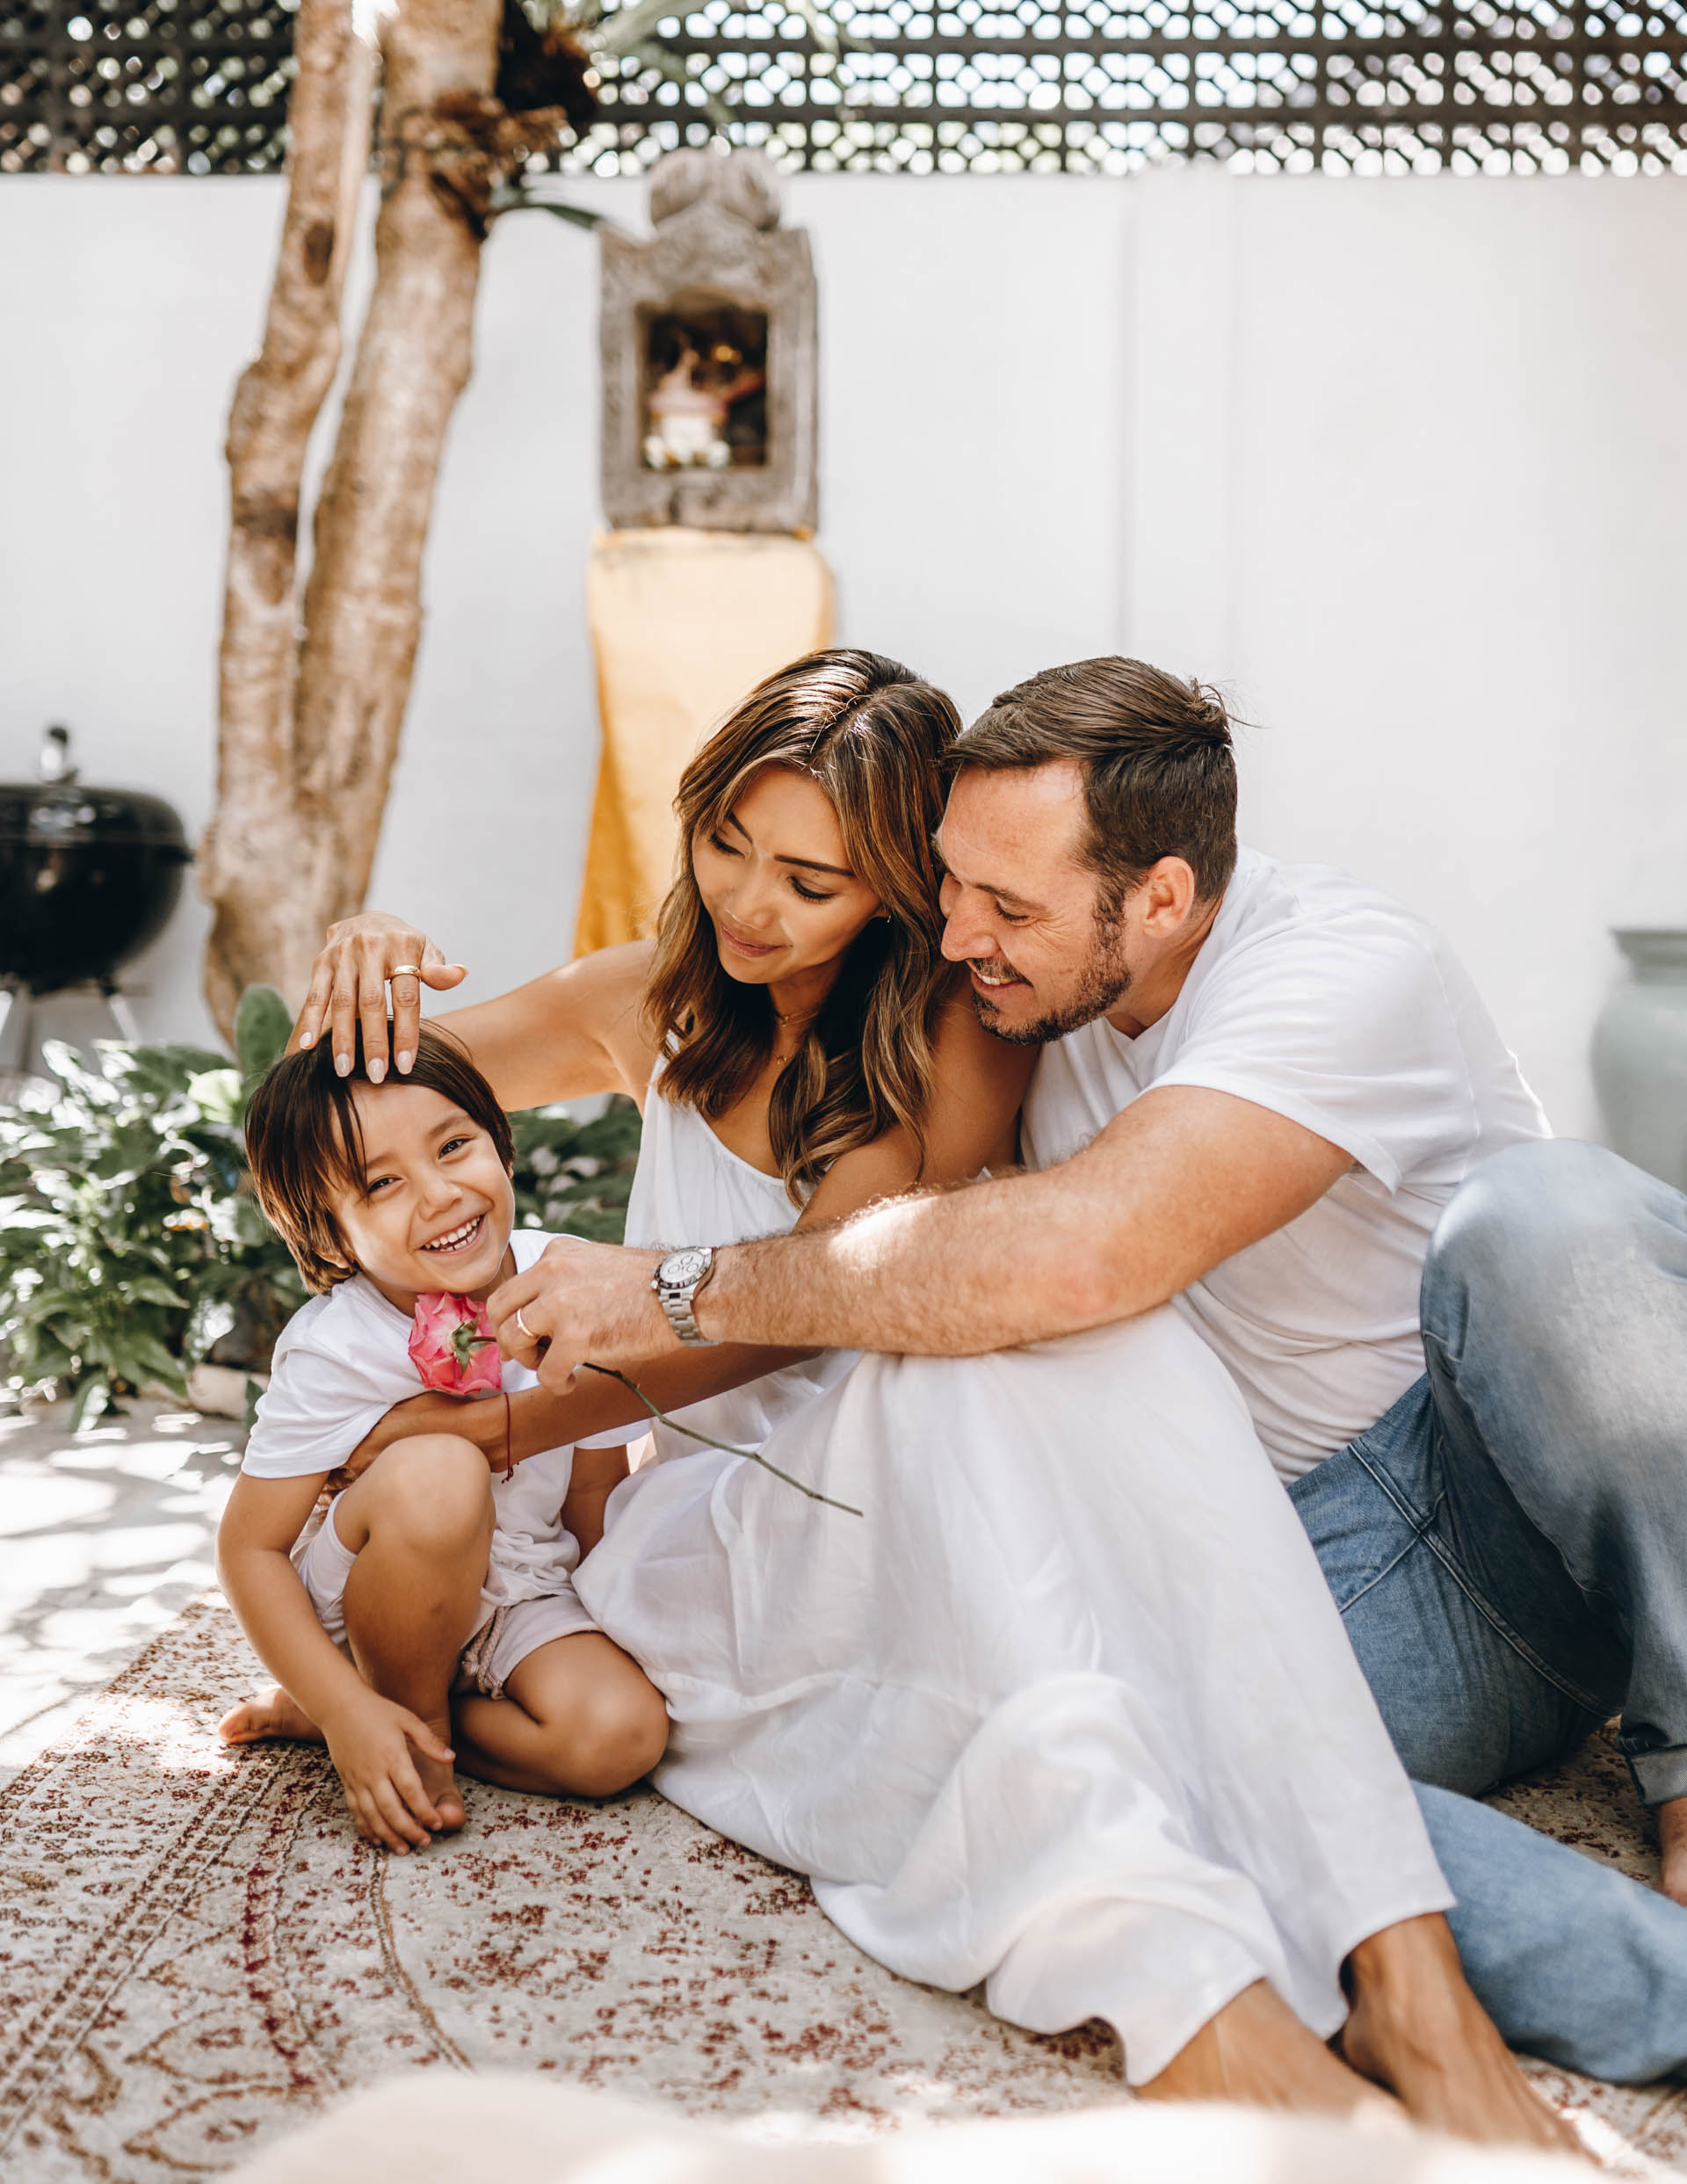 keira-mason-fourcard-family-shoot-cute.jpg